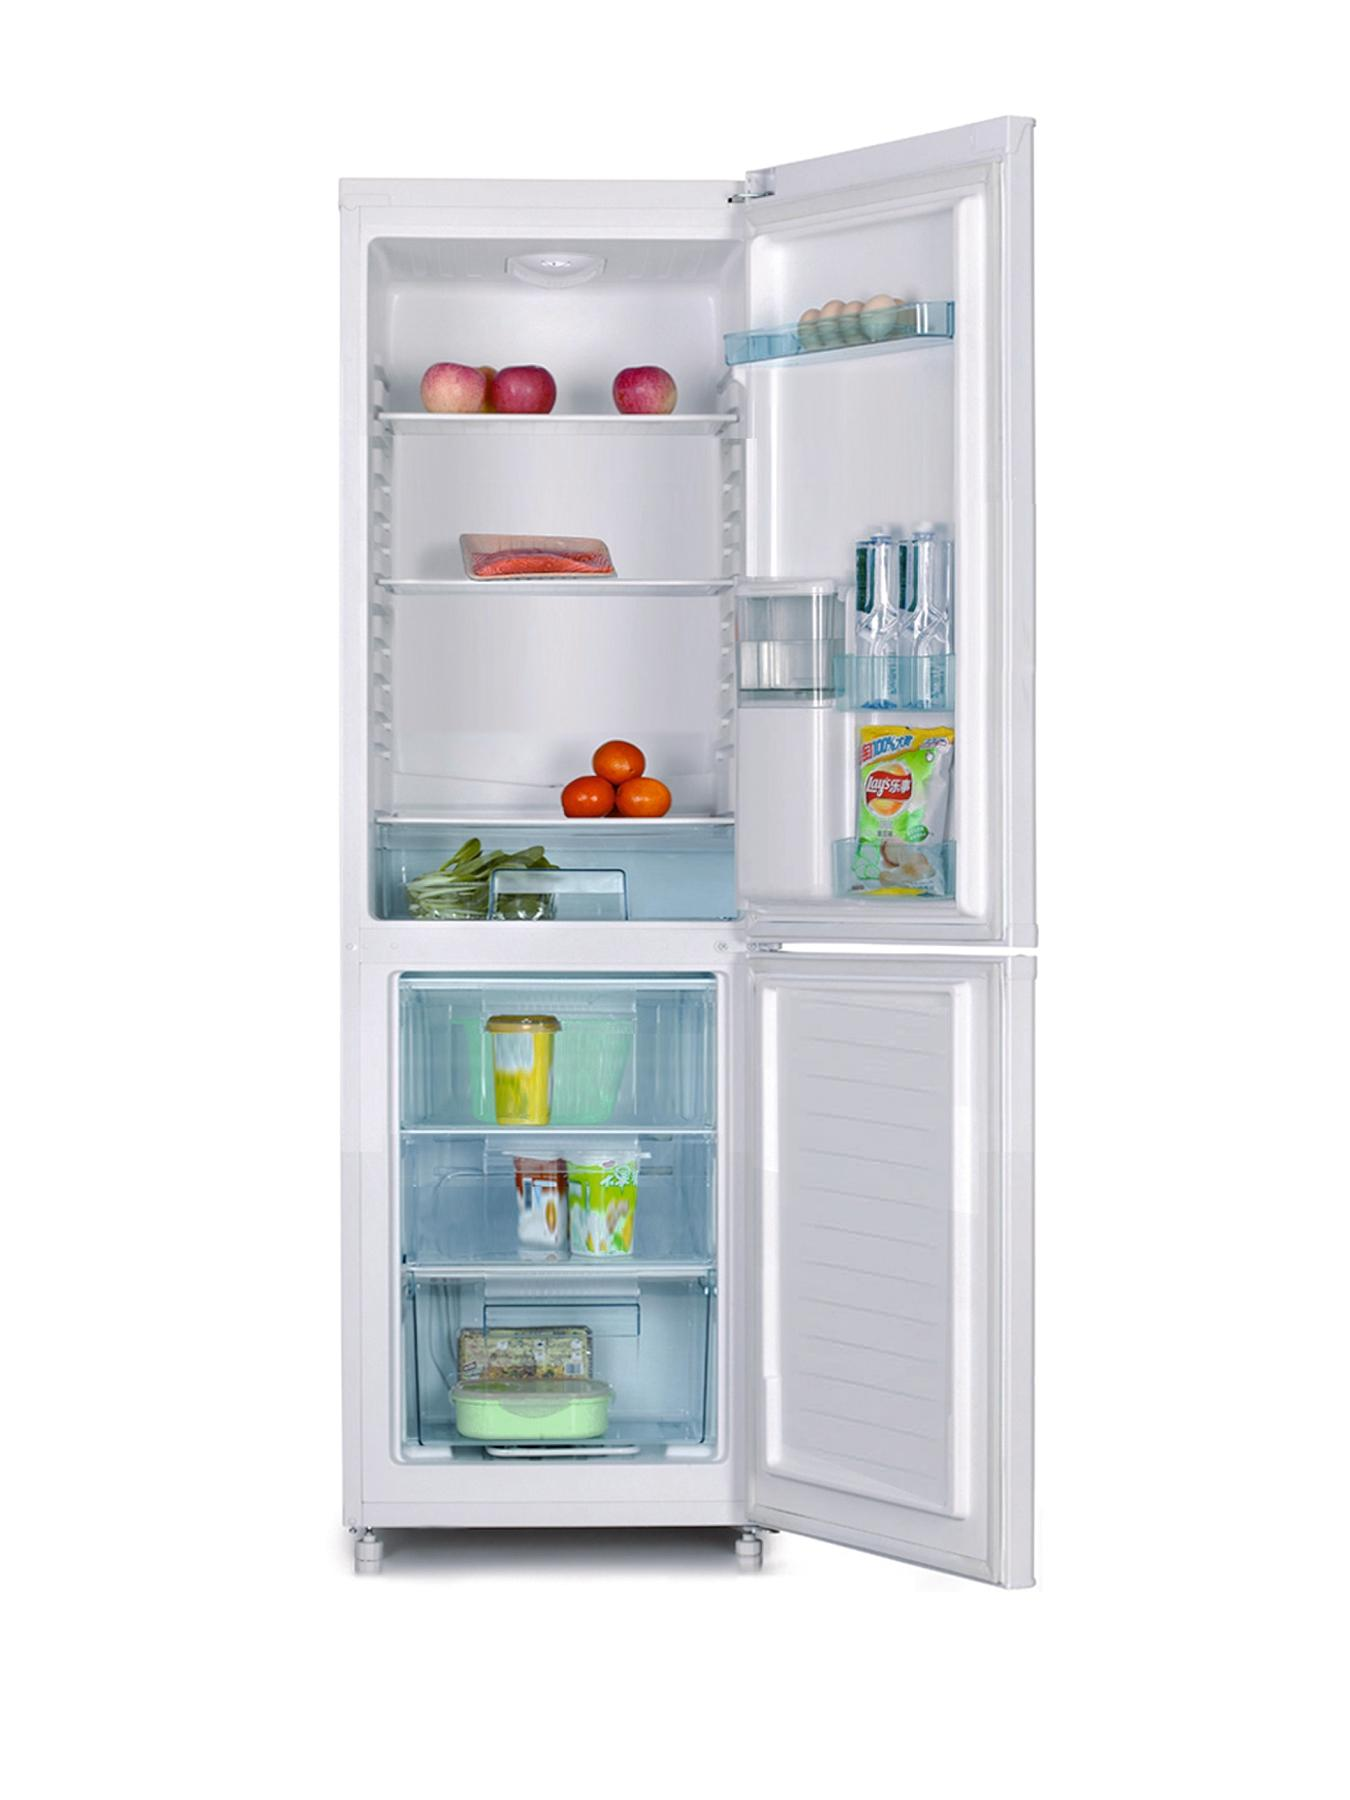 SR5330B 55cm Fridge Freezer with Chilled Water Dispenser - Black